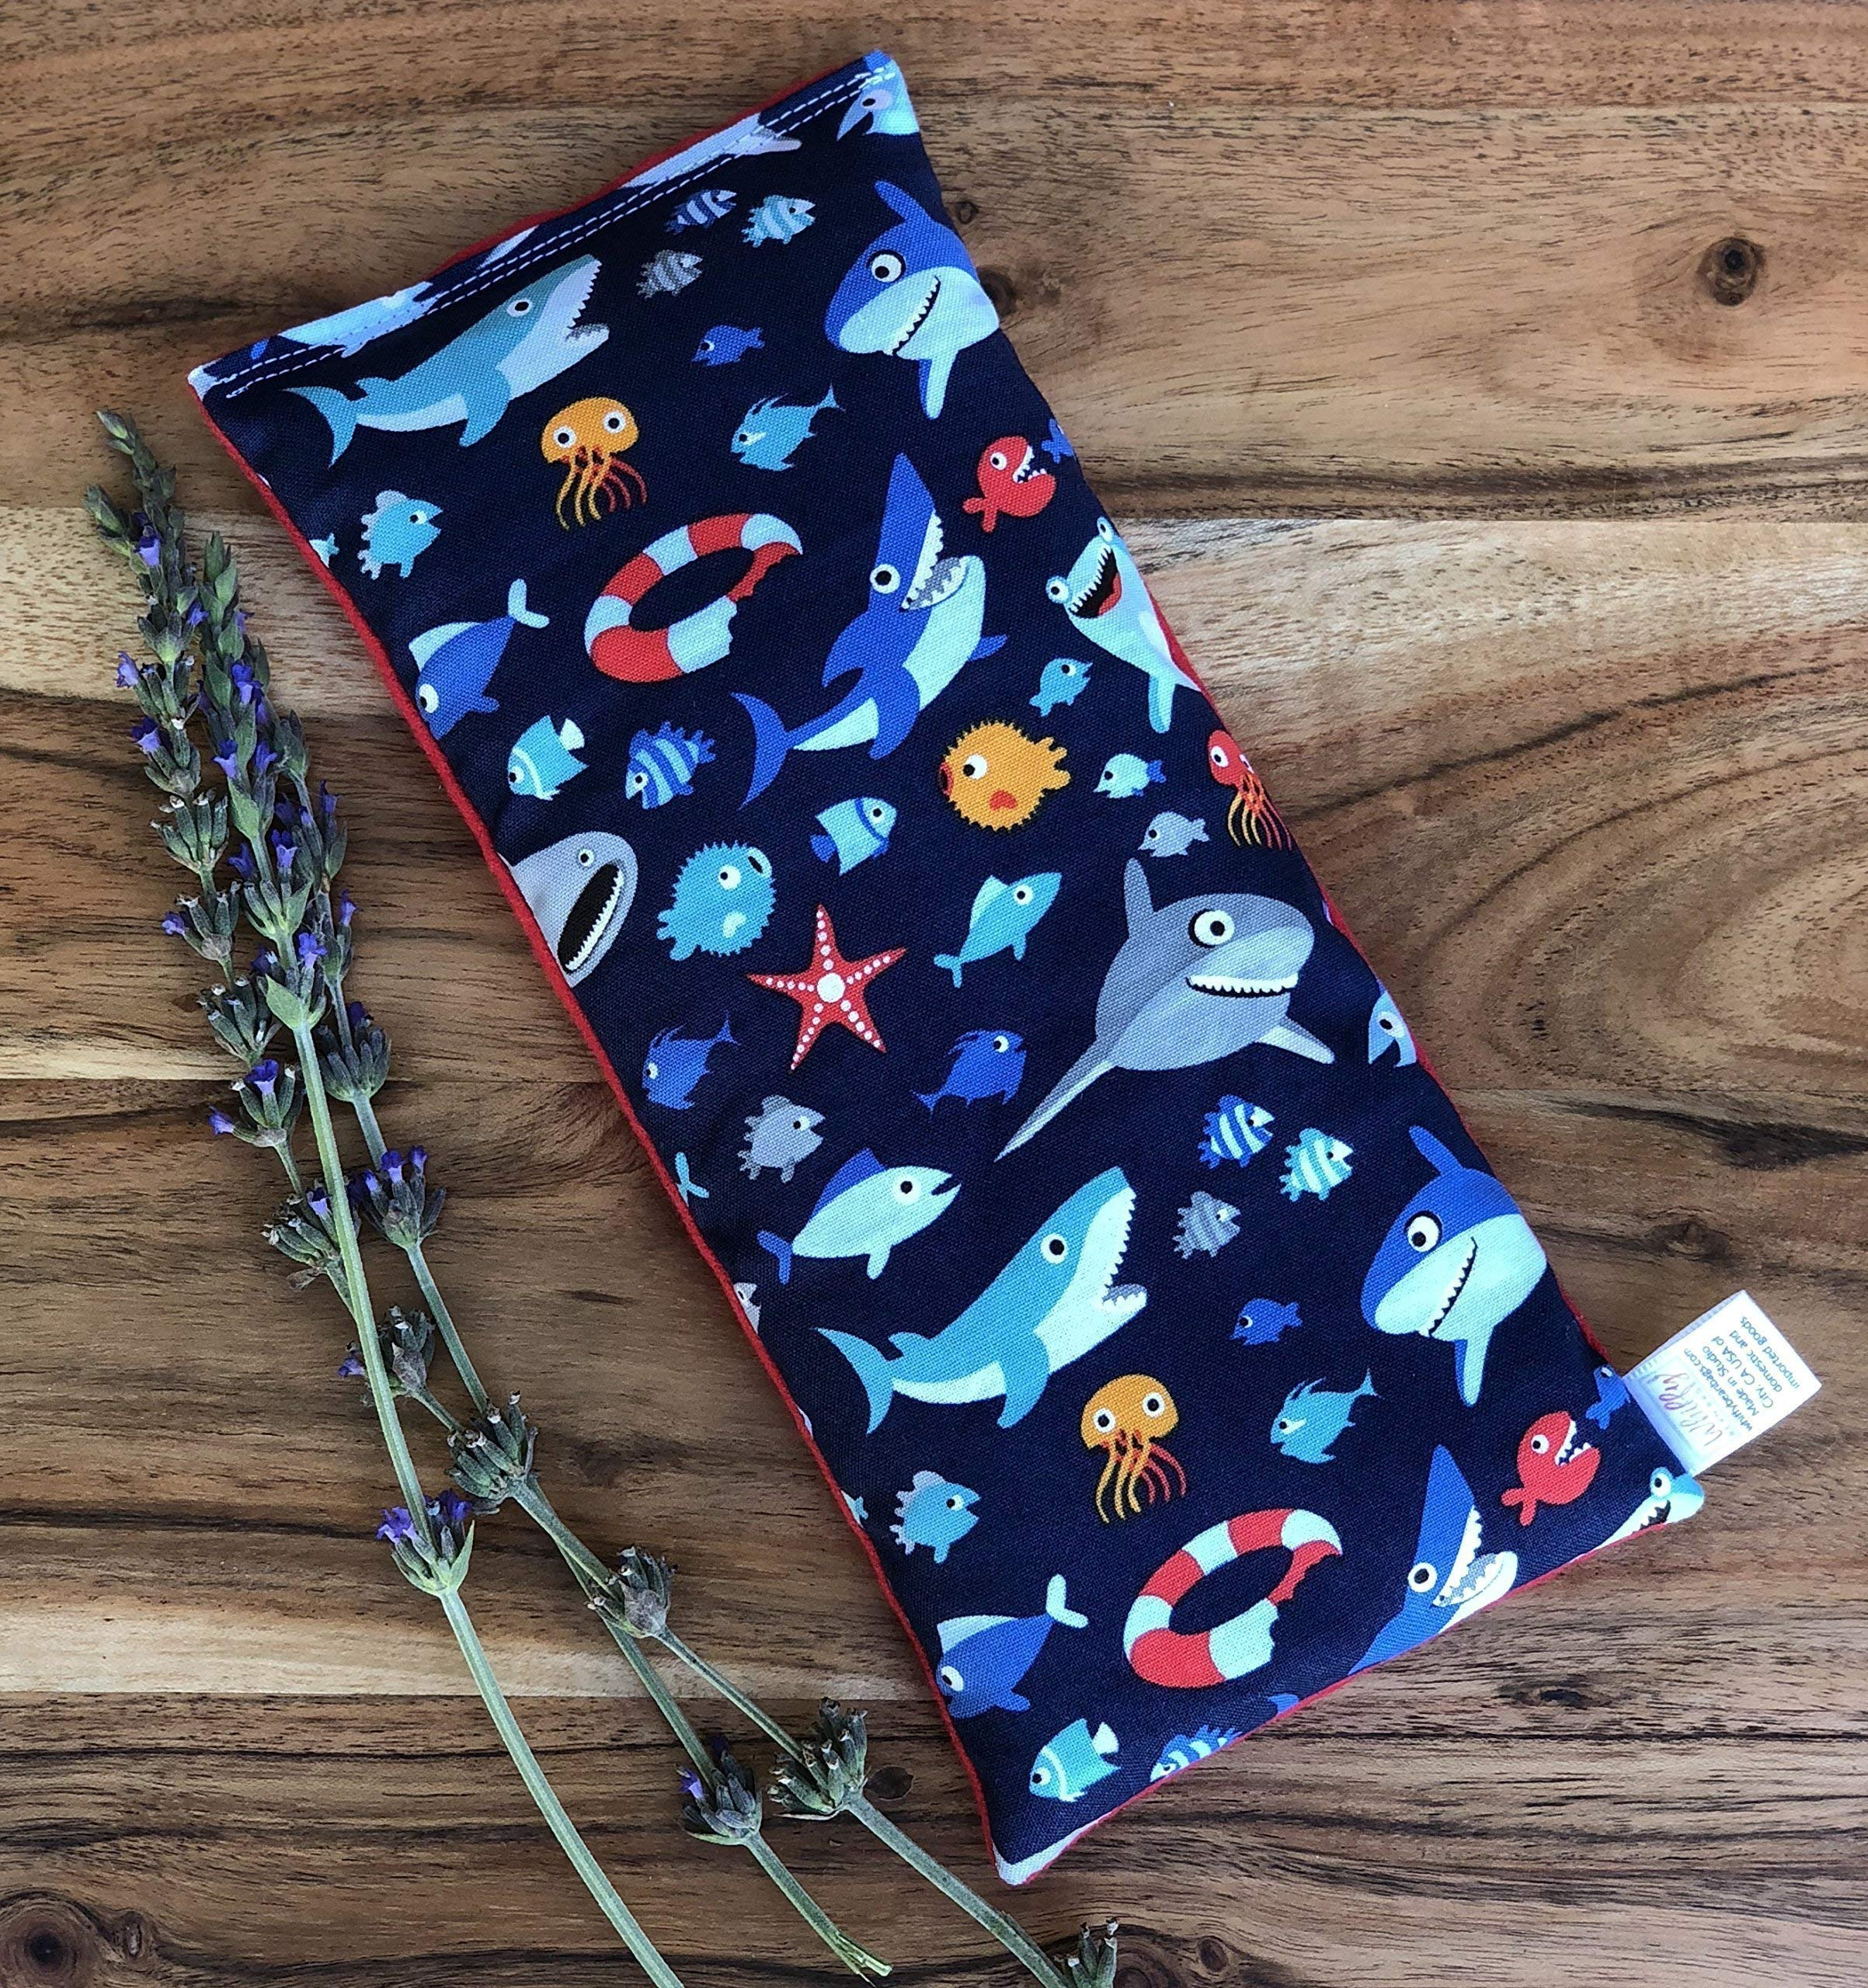 Microwave Heating Pad Lavender Eye Pillow Shark Gift